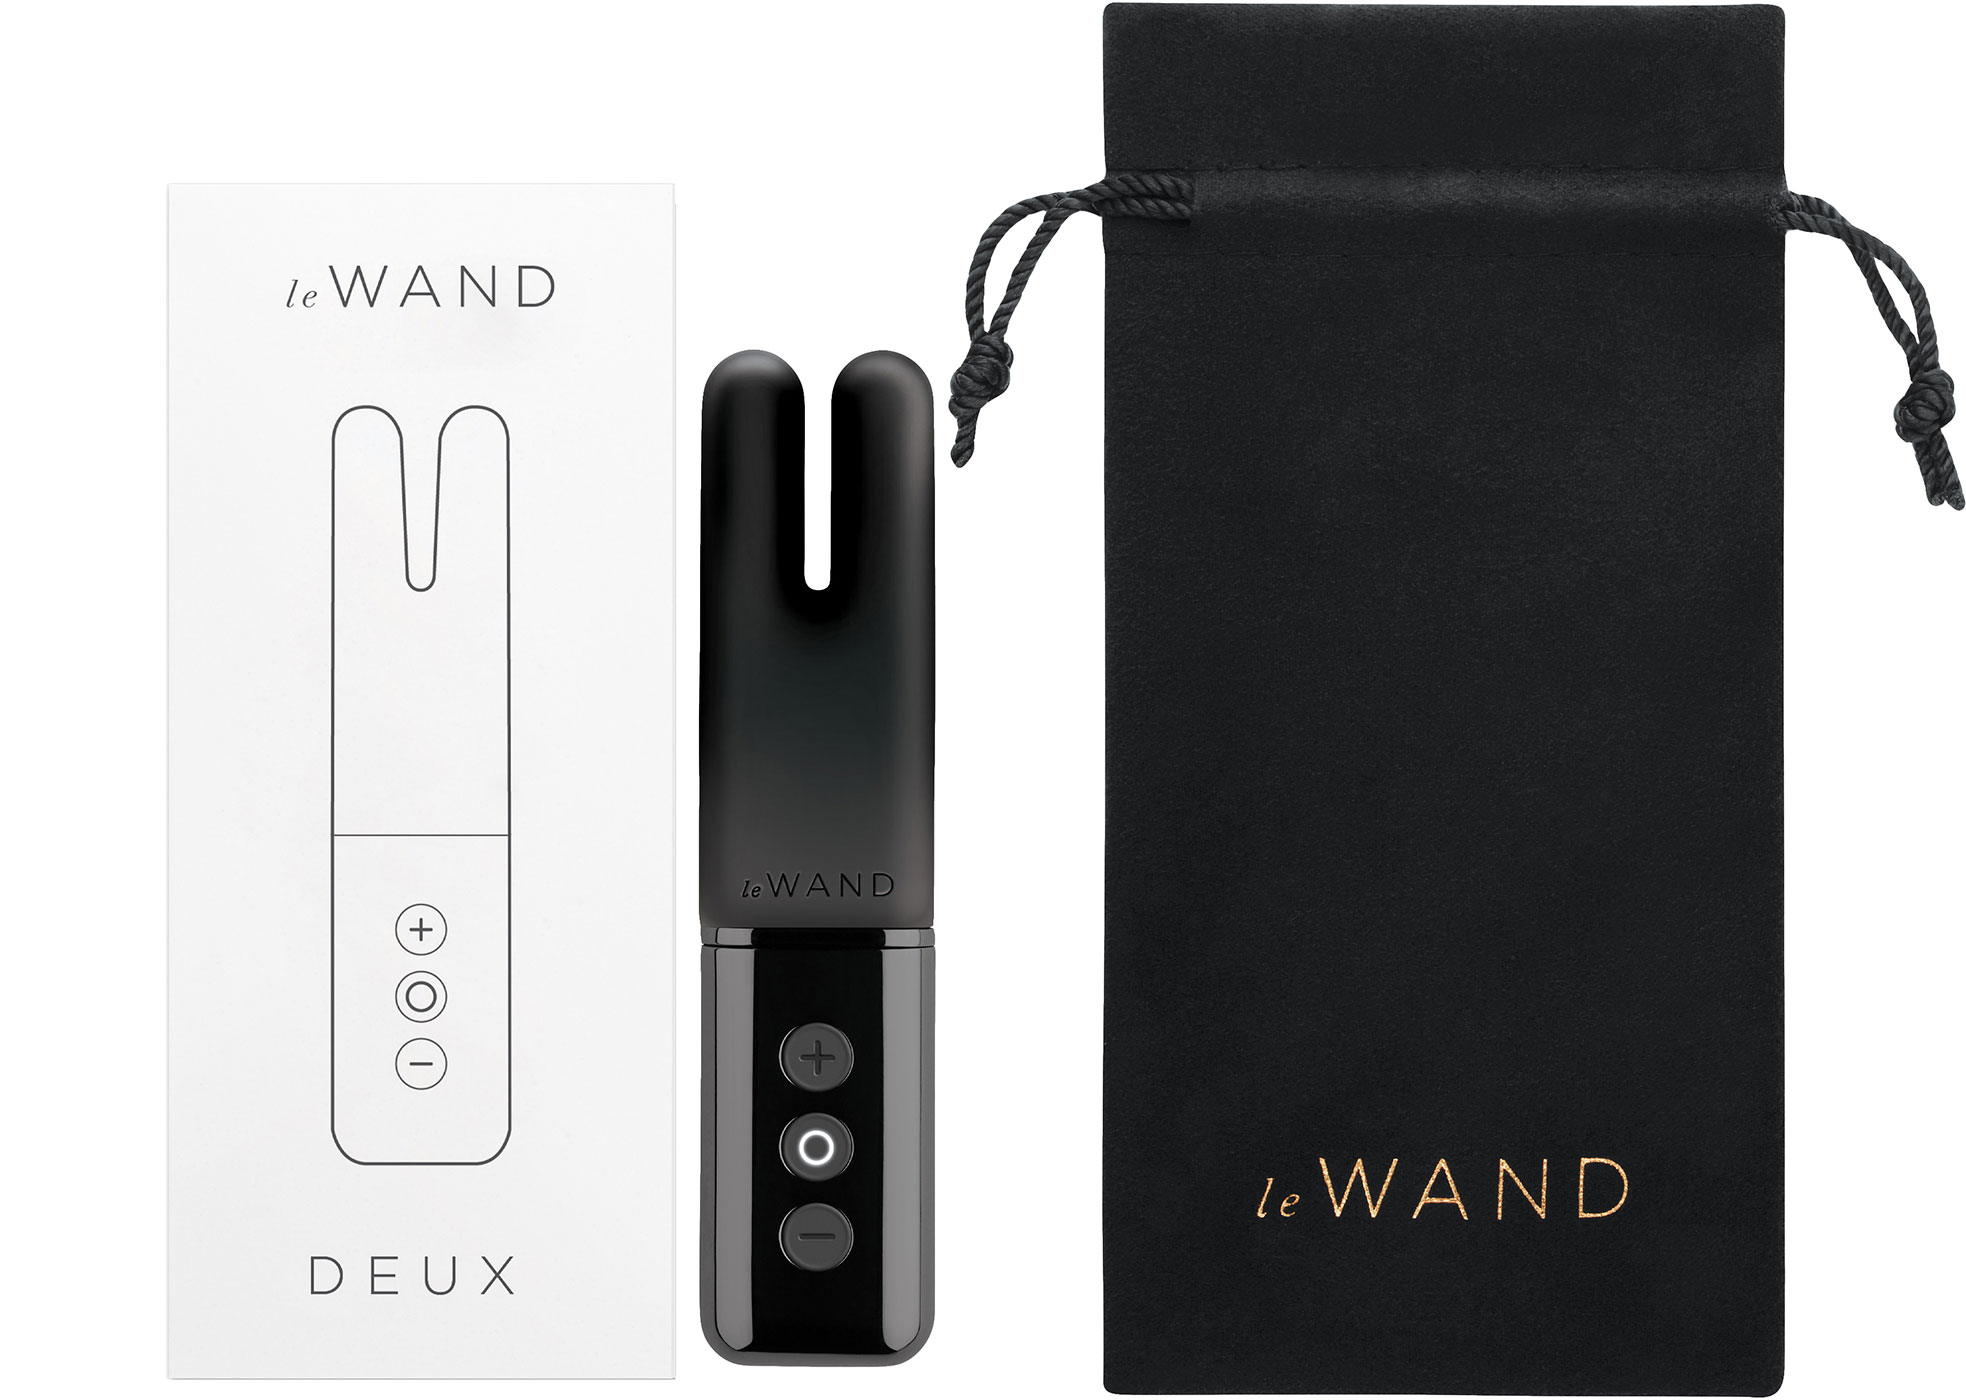 Le Wand Deux Powerful Twin-Motor Waterproof Rechargeable Vibrator - Box Contents